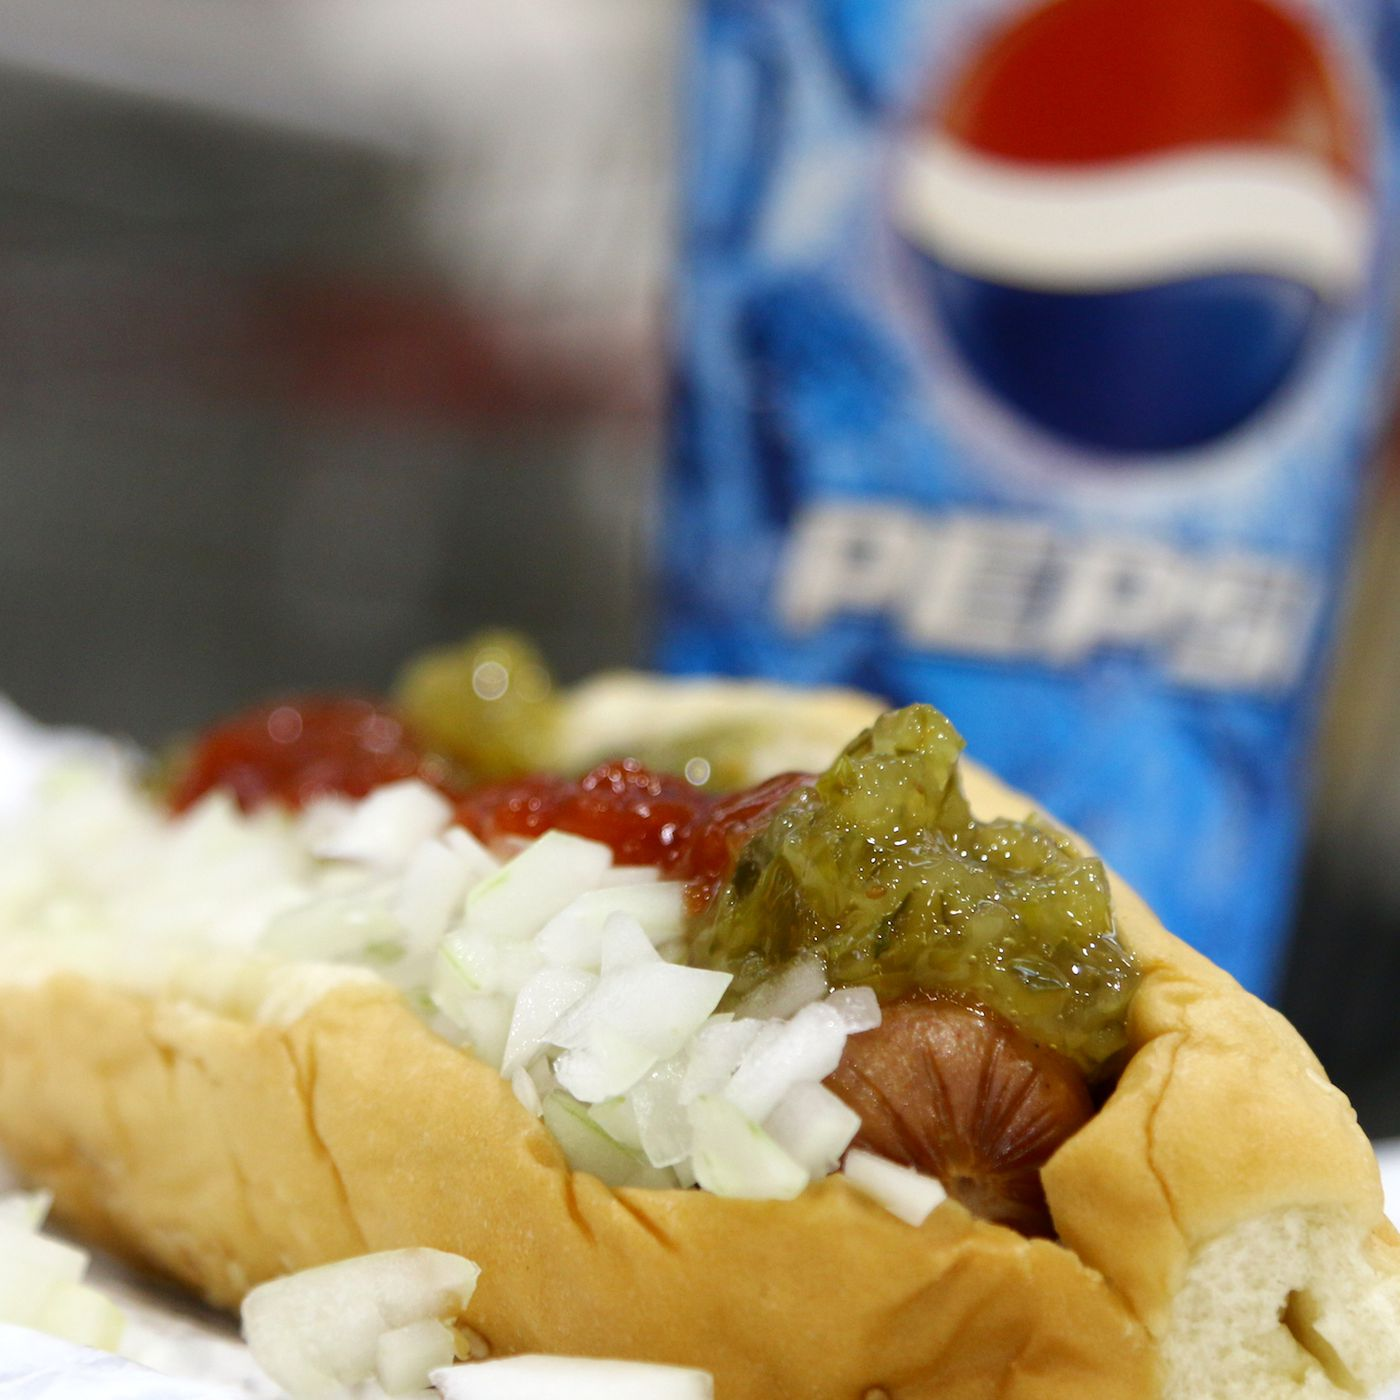 Costco's Hot Dogs Will Probably Never Go Up in Price - Eater